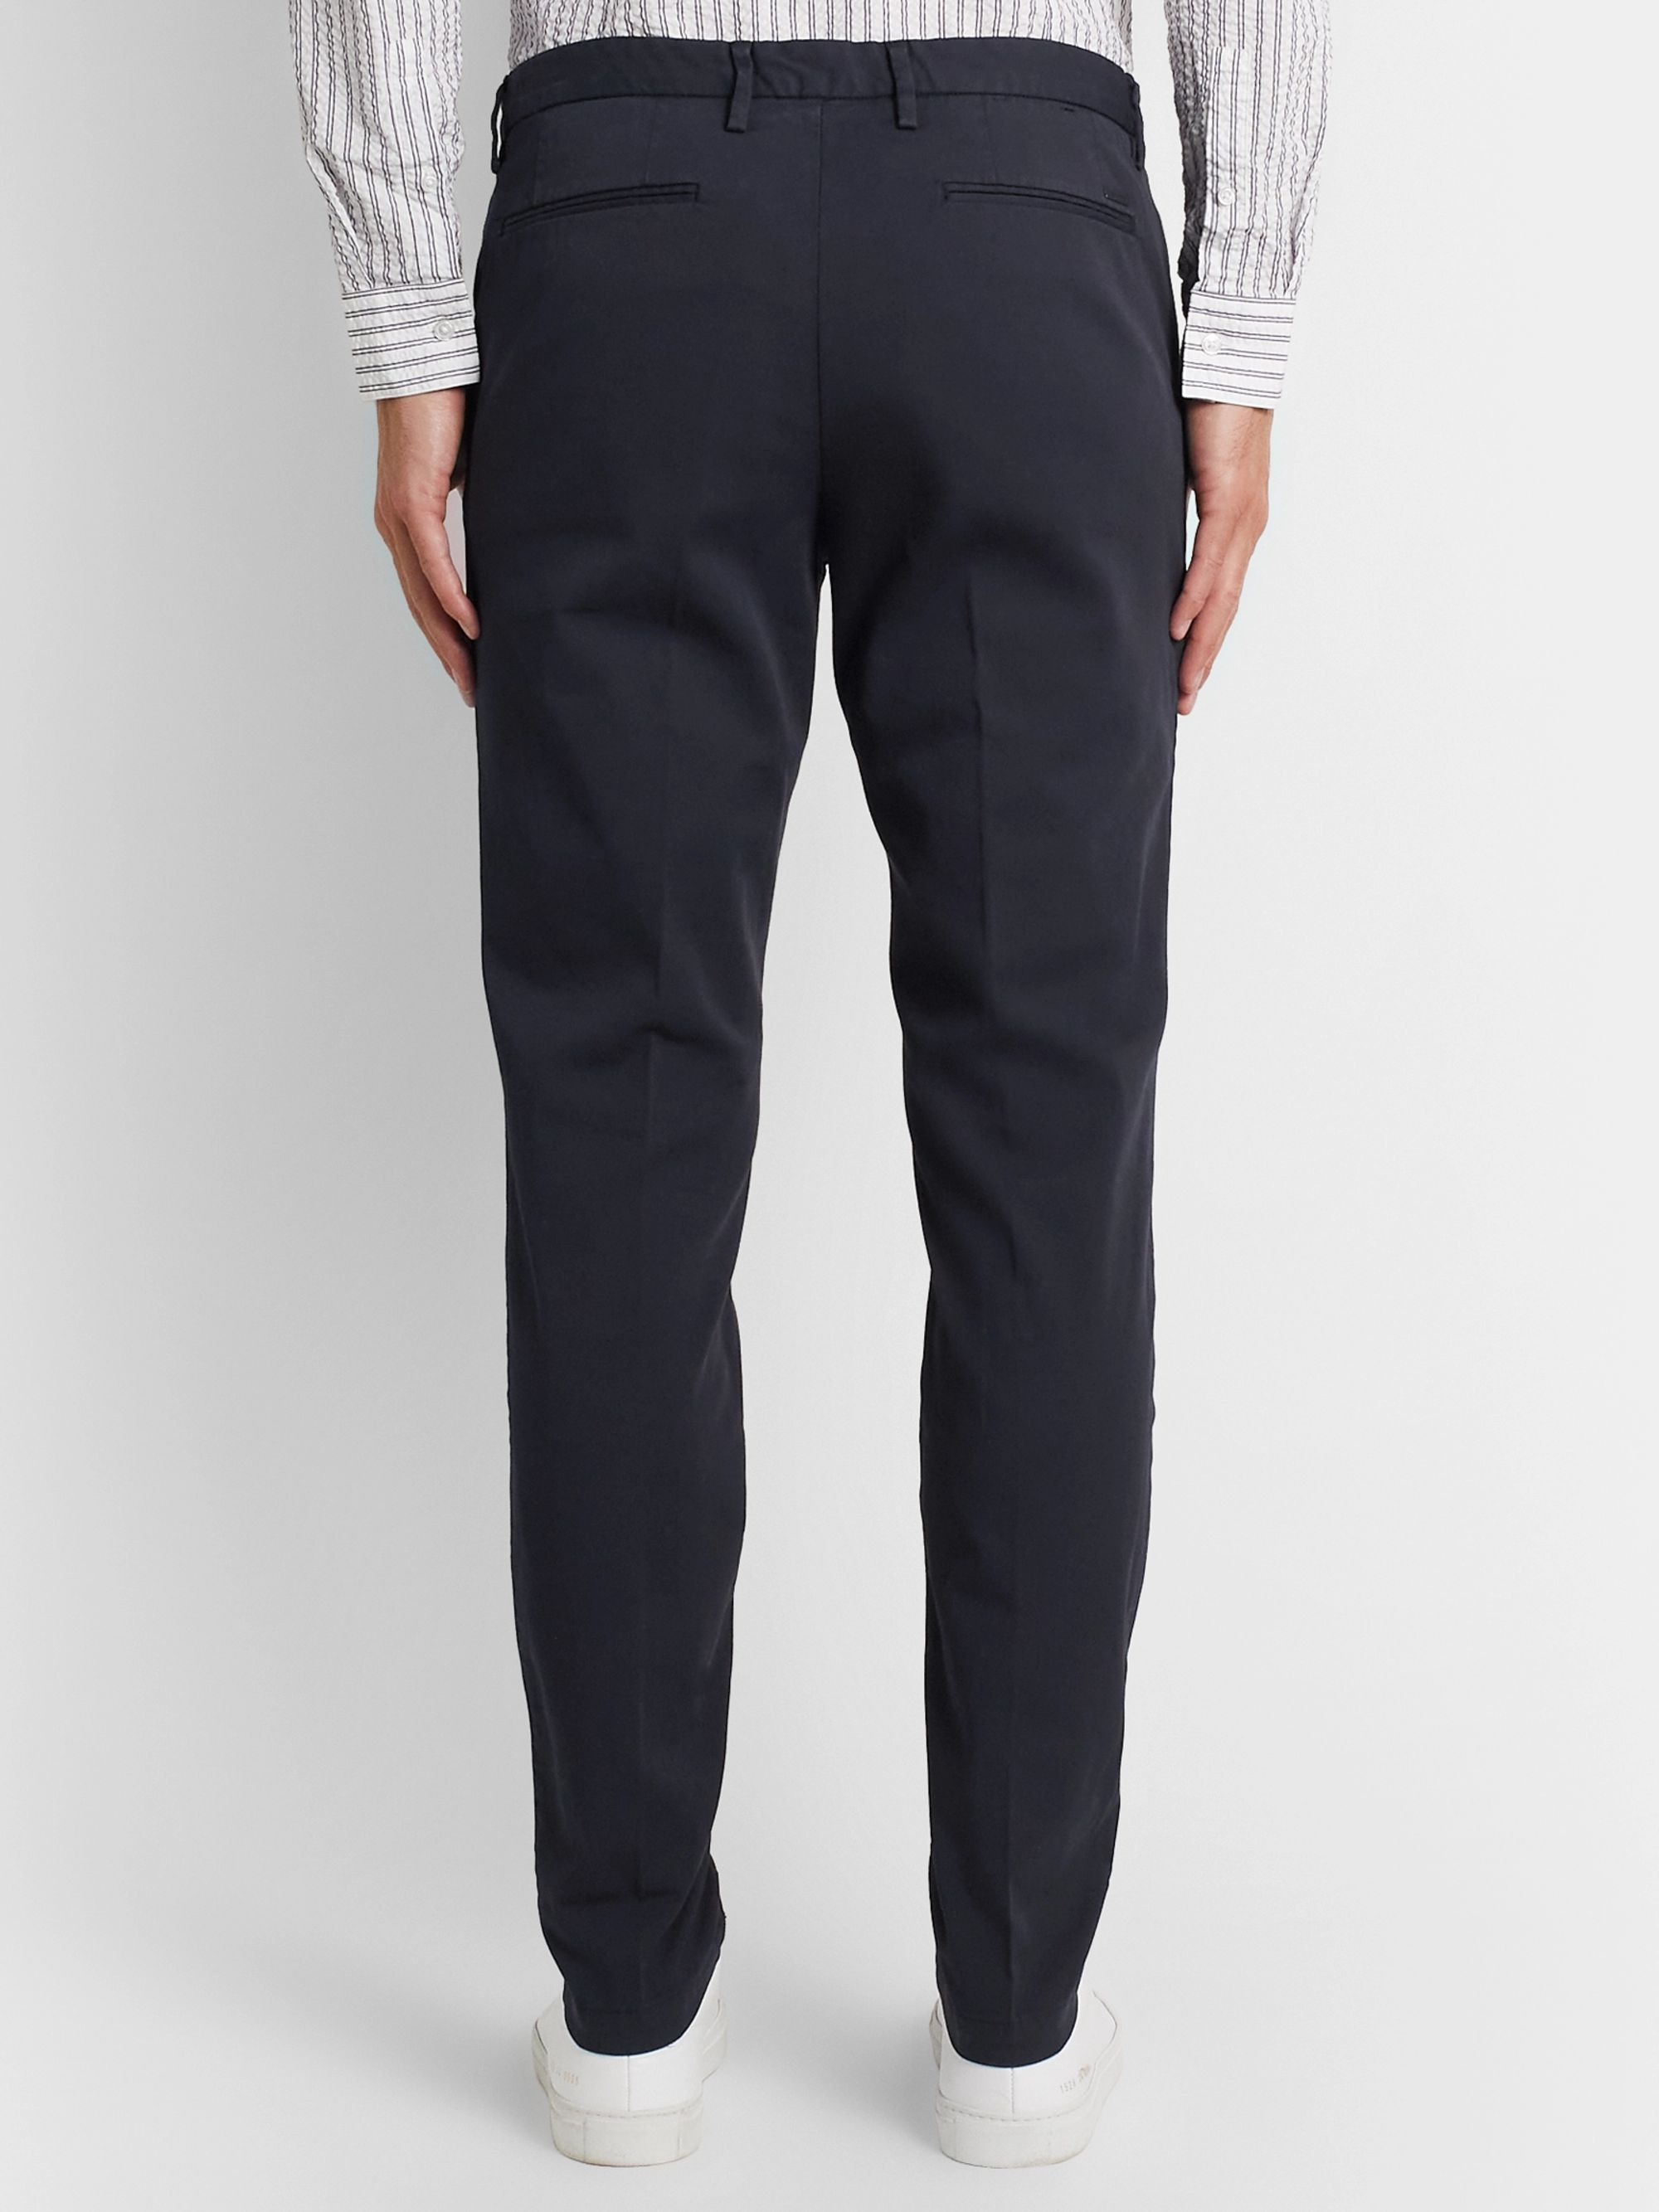 Hugo Boss Katio Slim-Fit Tapered Cotton-Blend Twill Chinos